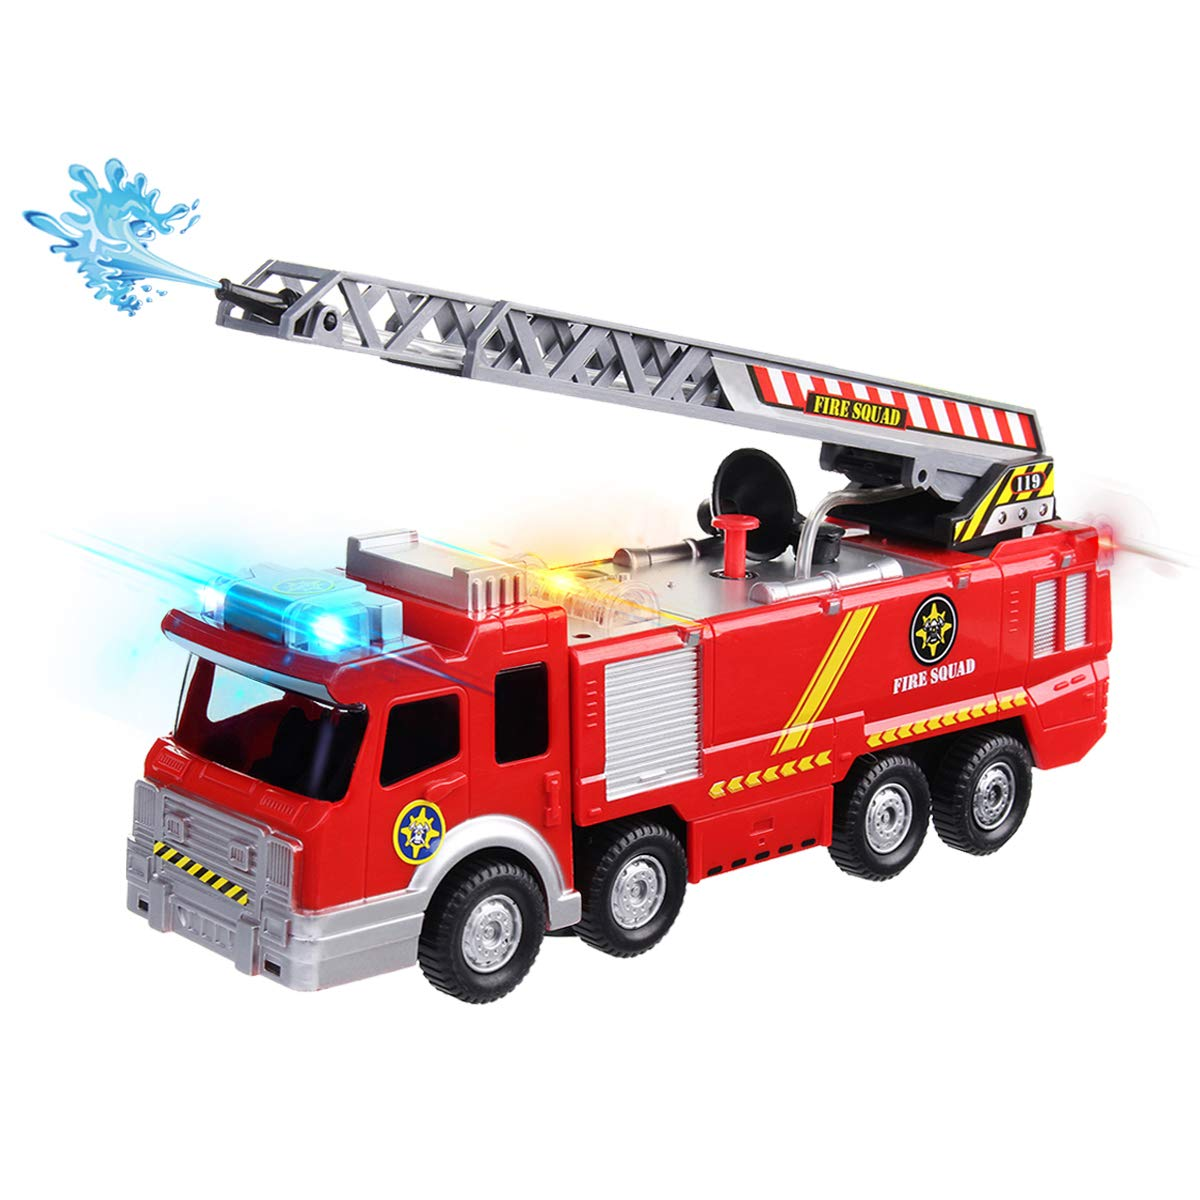 Amazon.com: Conthfut Fire Engine, Fire Truck Toy, Battery Operated Electric  Car Rescue Vehicle with Manual Water Pump Extending Ladder Flashing Lights  Bump ...